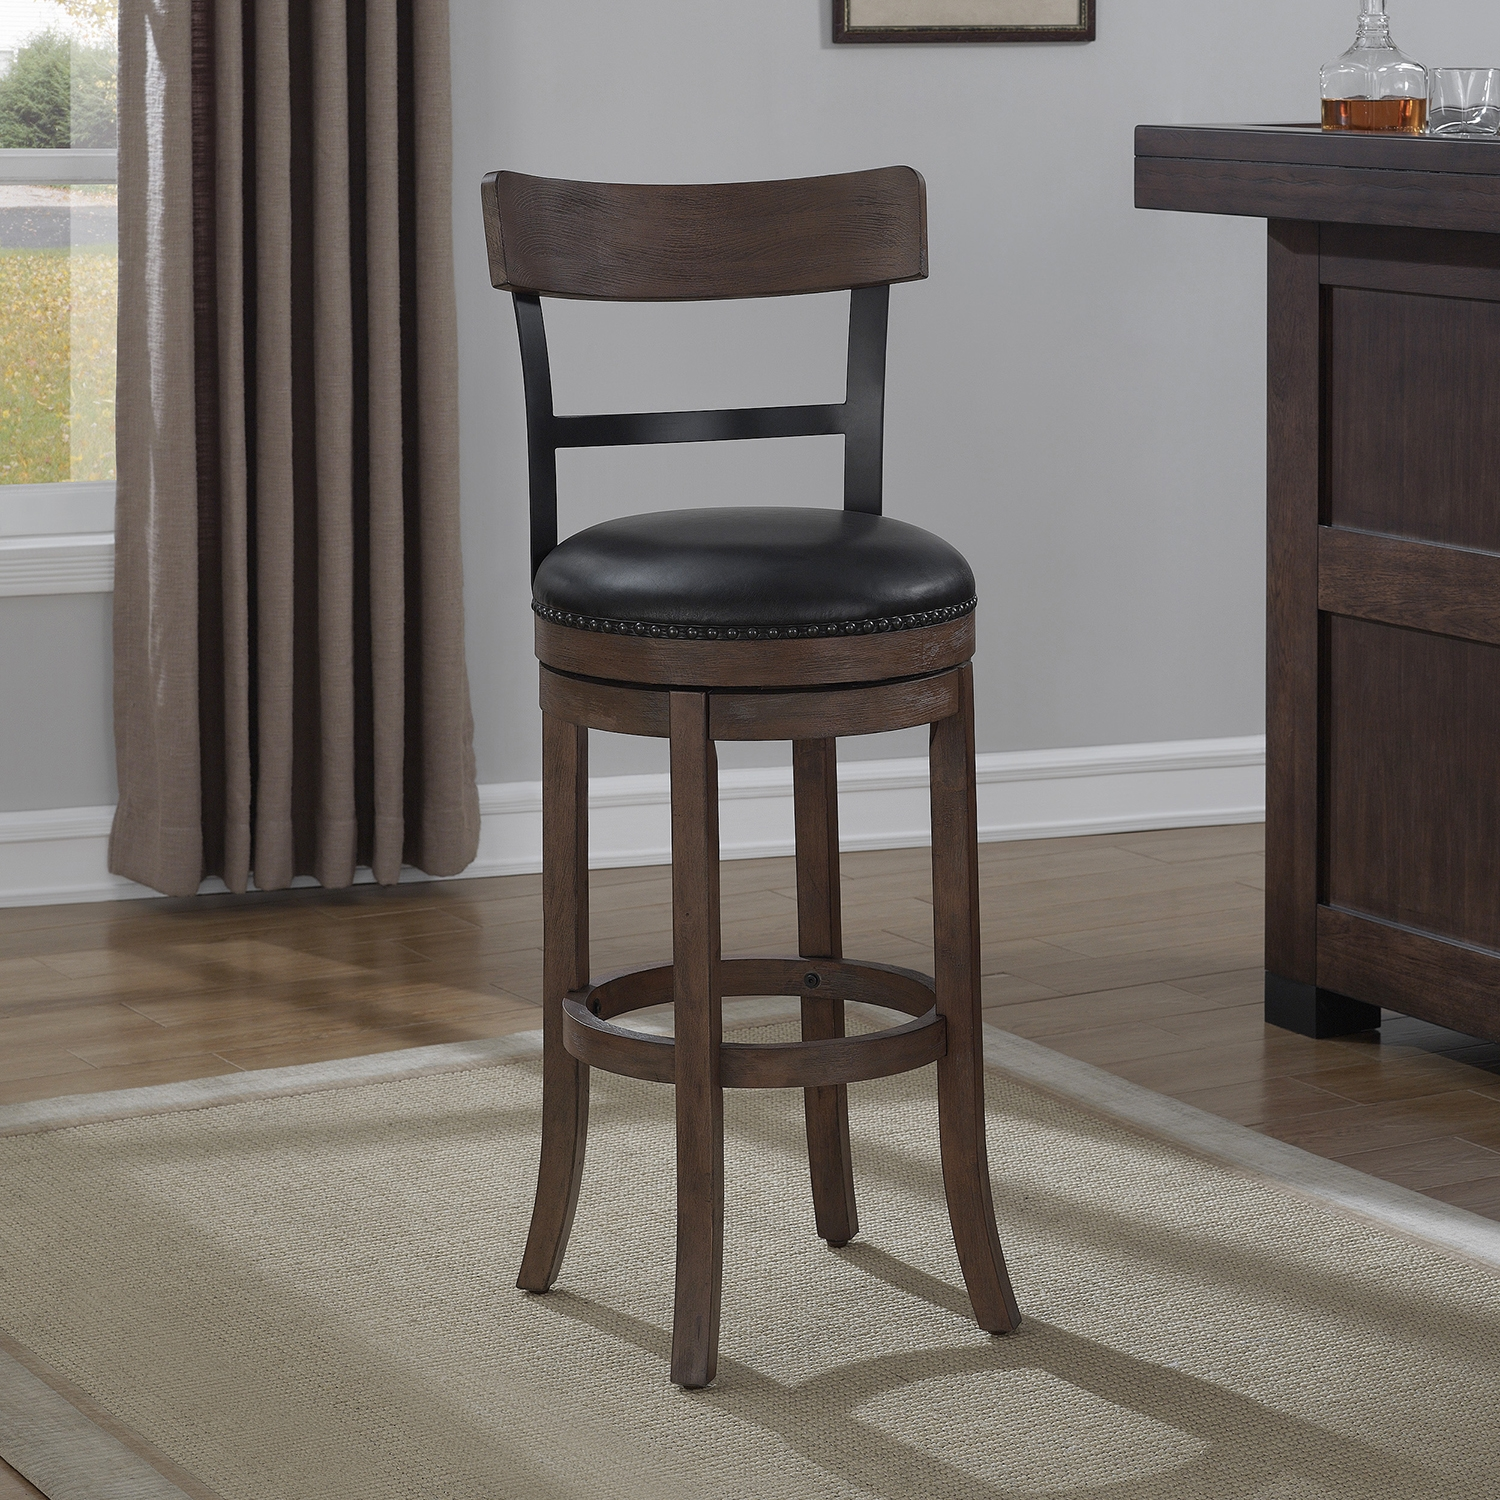 Taranto Swivel Bar Stool - Washed Brown, Black Bonded Leather - AW-B2-208-30L